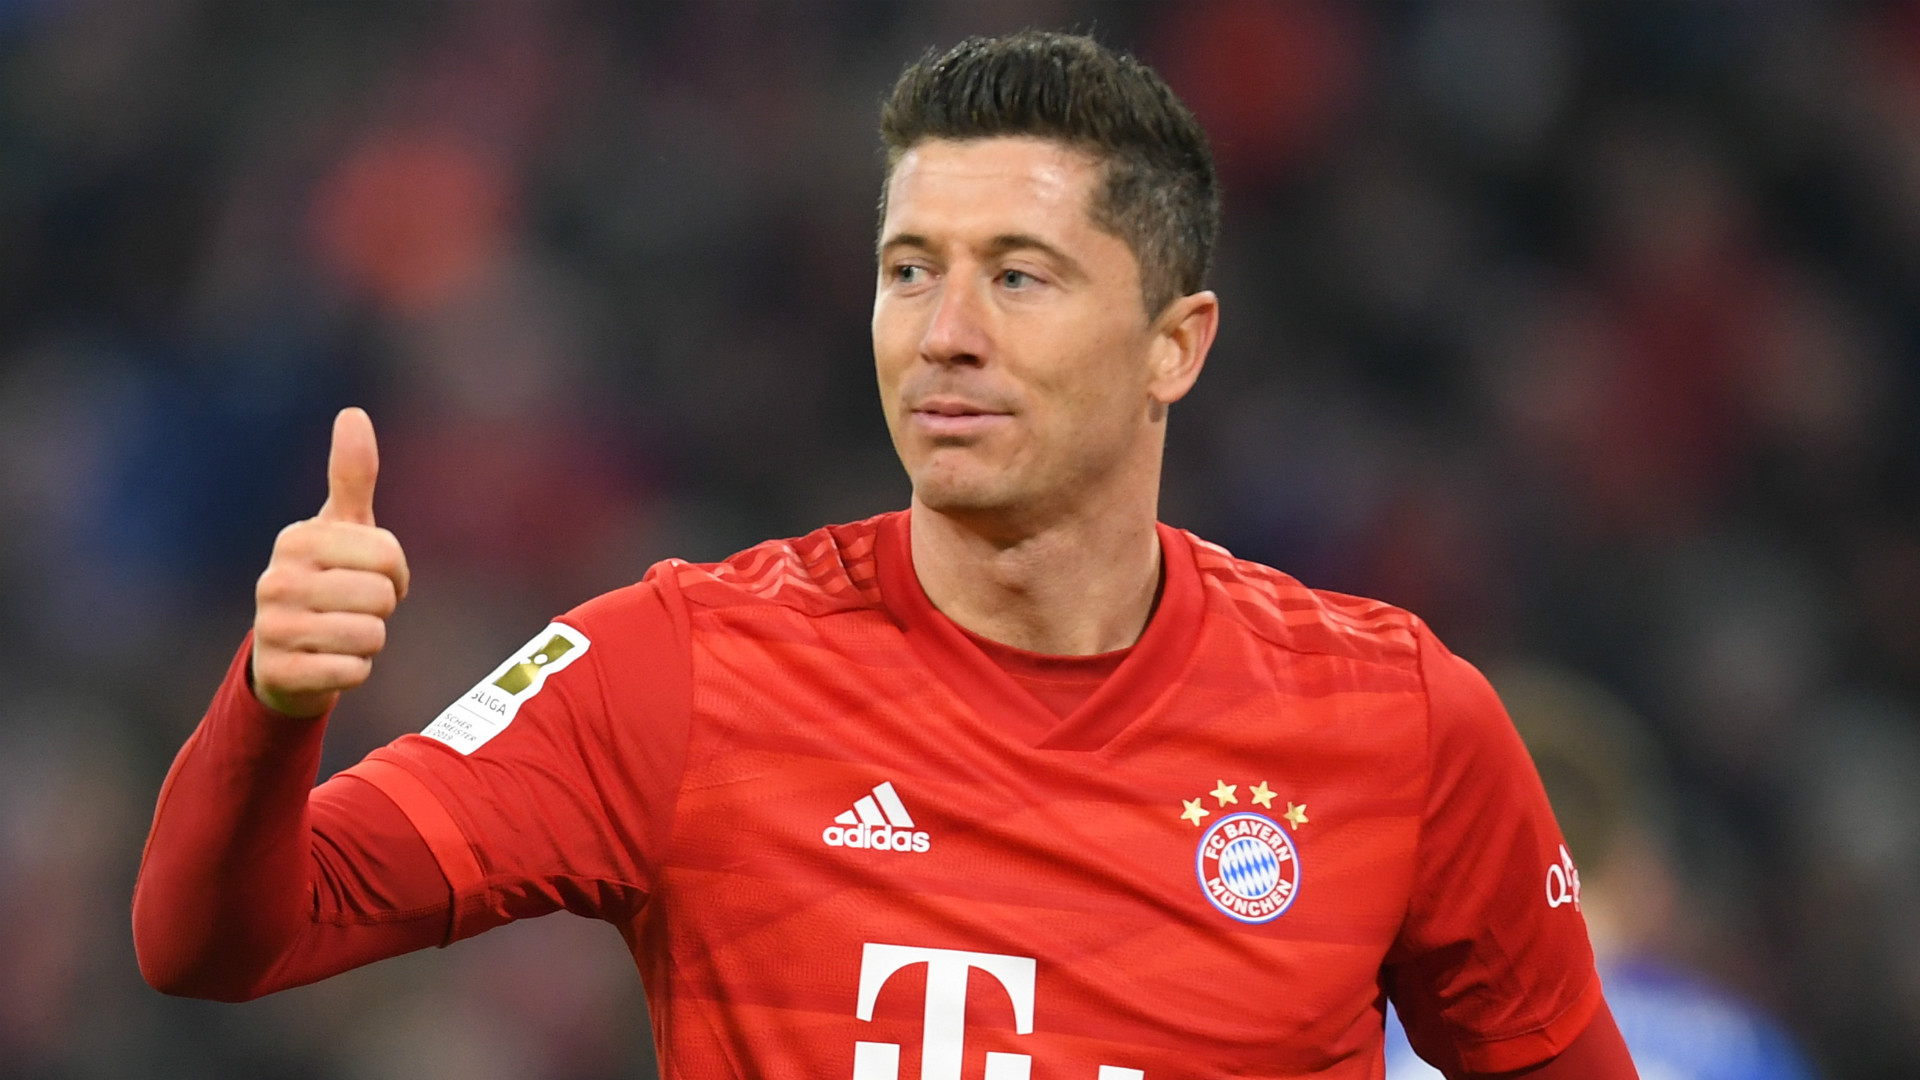 Lewandowski is the best centre-forward in the world, claims Bayern chairman Rummenigge